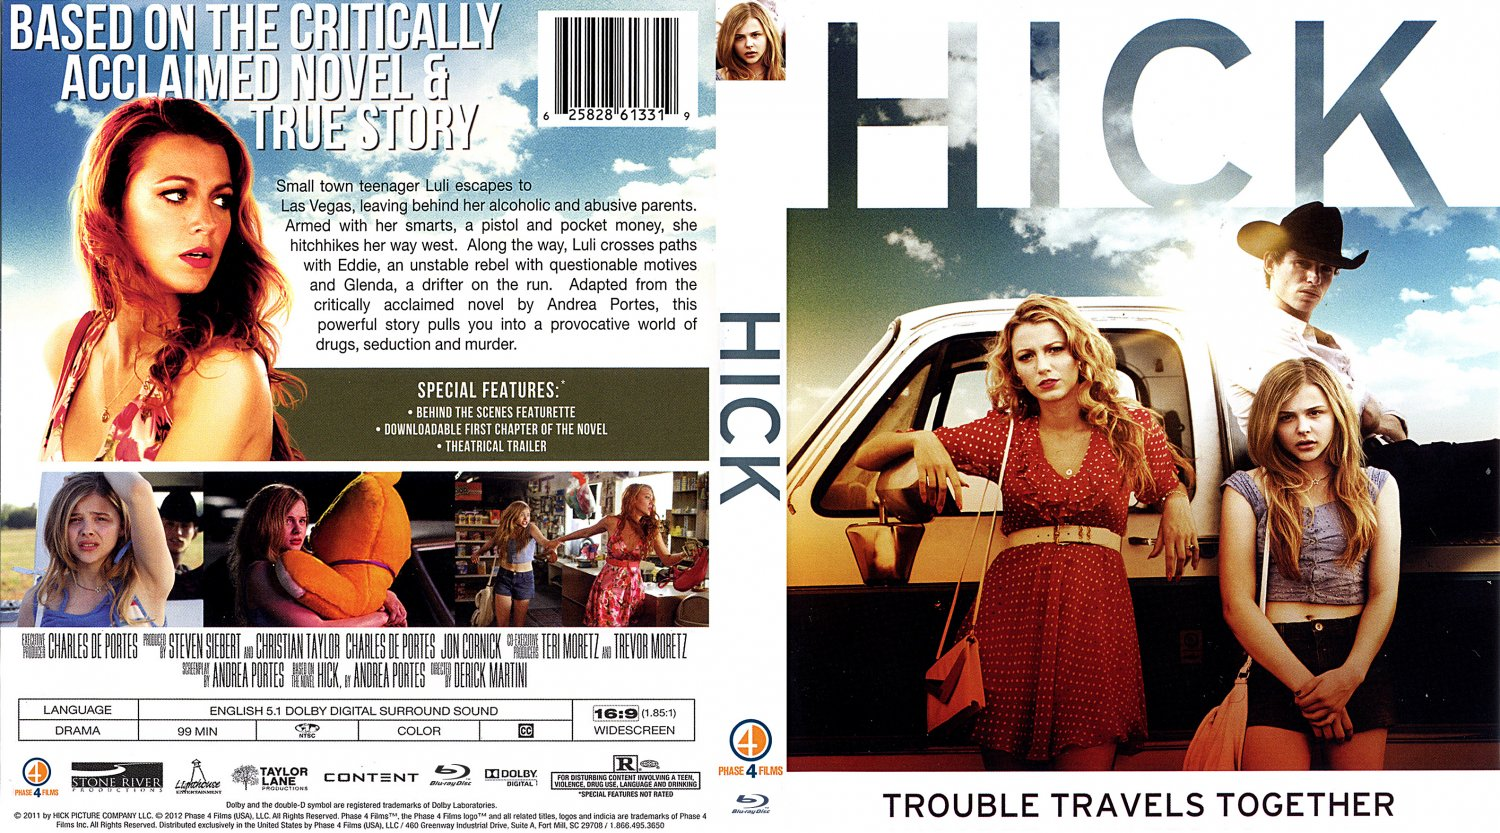 Hick - Movie Blu-Ray Custom Covers - Hick 2011 CustomBD :: DVD Covers: www.dvd-covers.org/art/Blu_Ray_Covers/Movie_Blu-Ray_Custom_Covers...